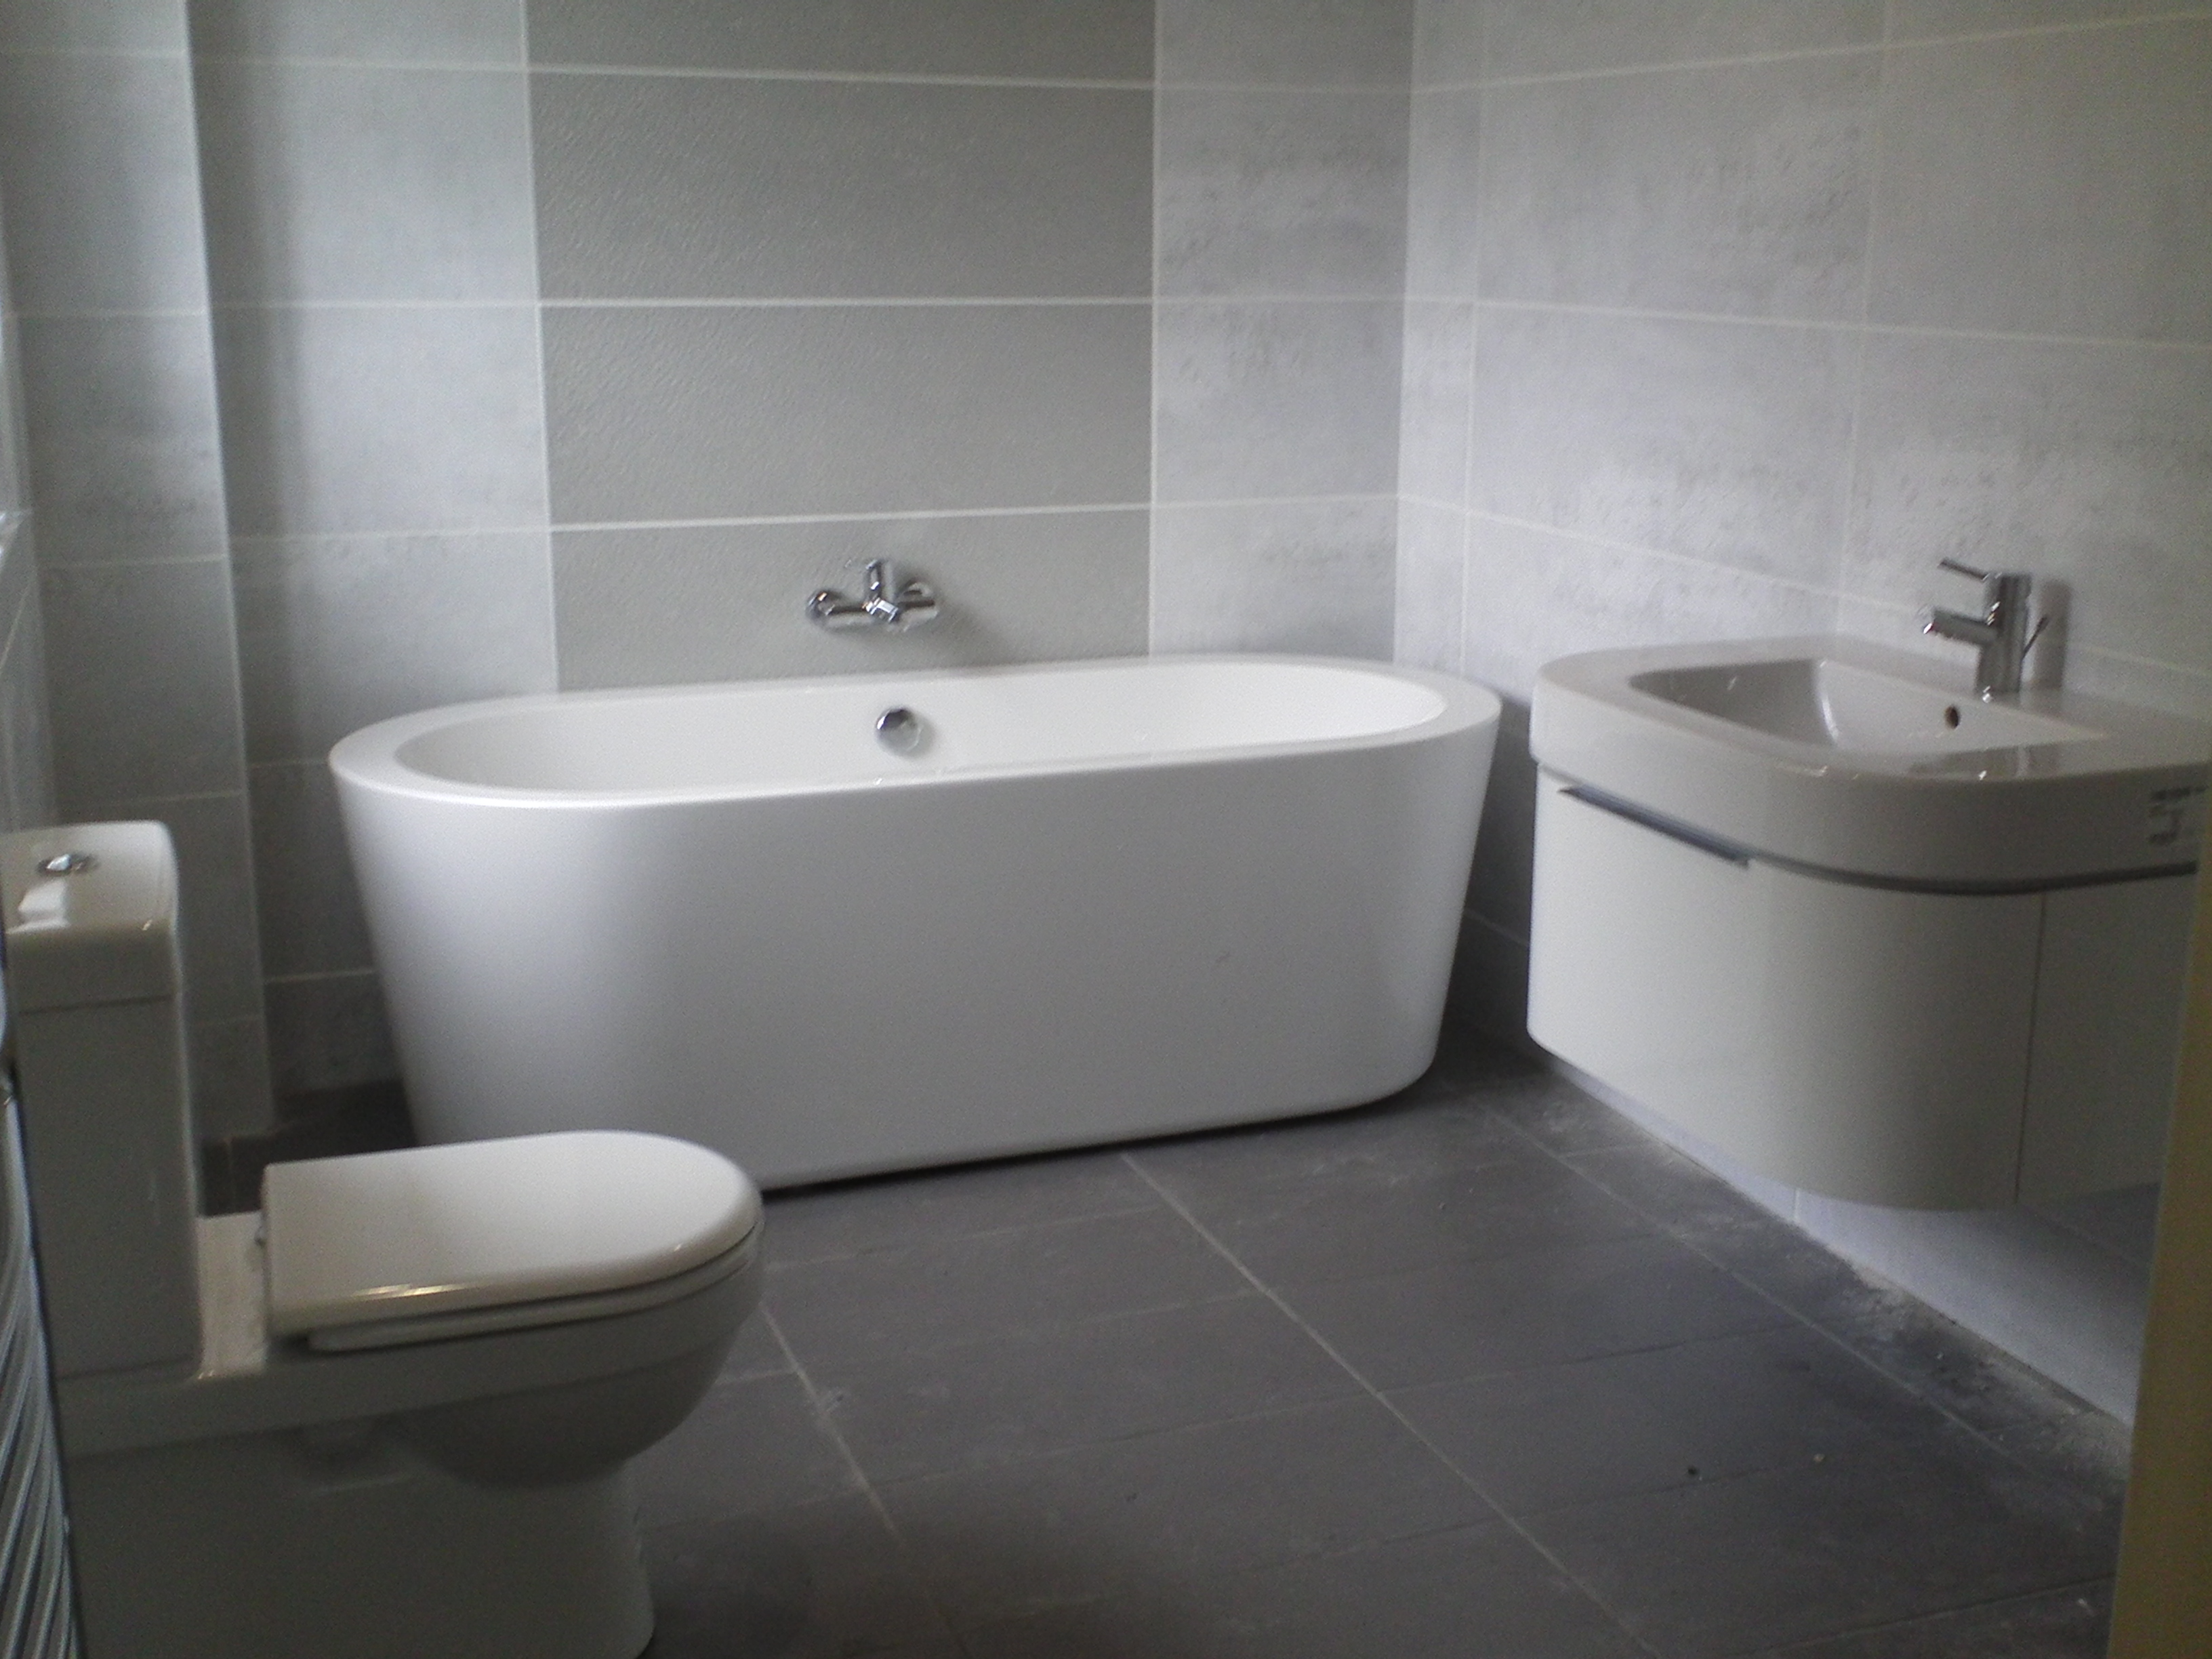 luxury-victorian-bathroom-ideas-uk-with-bathroom-design-ideas-2012-uk-imga0258-bathroom-design-melton-mowbray